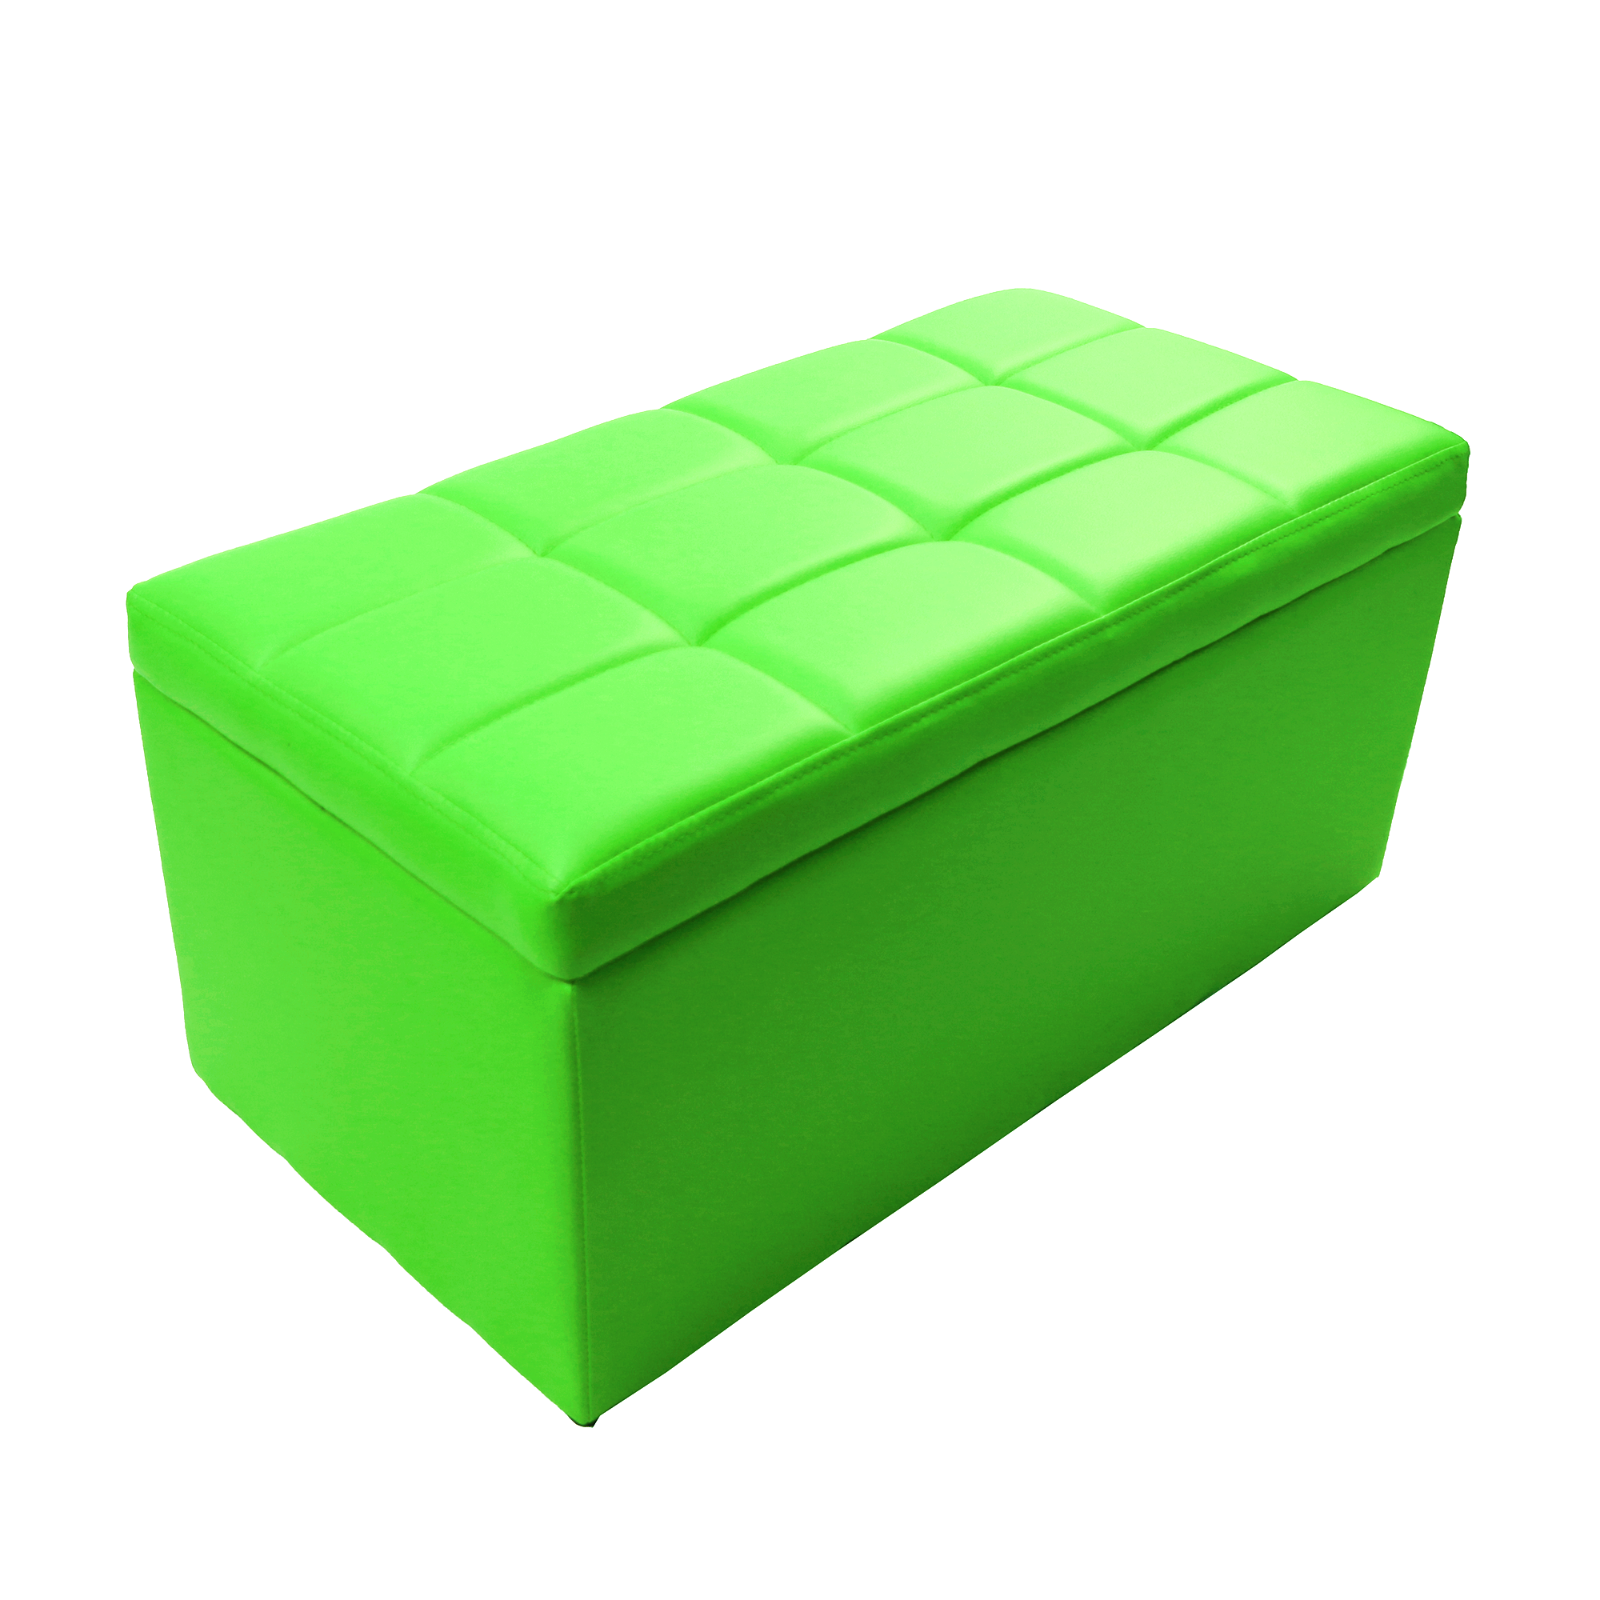 Swell Details About Modern Rectangular Ottoman Cube Coffee Table Bench Footrest Lift Top Lime Green Uwap Interior Chair Design Uwaporg